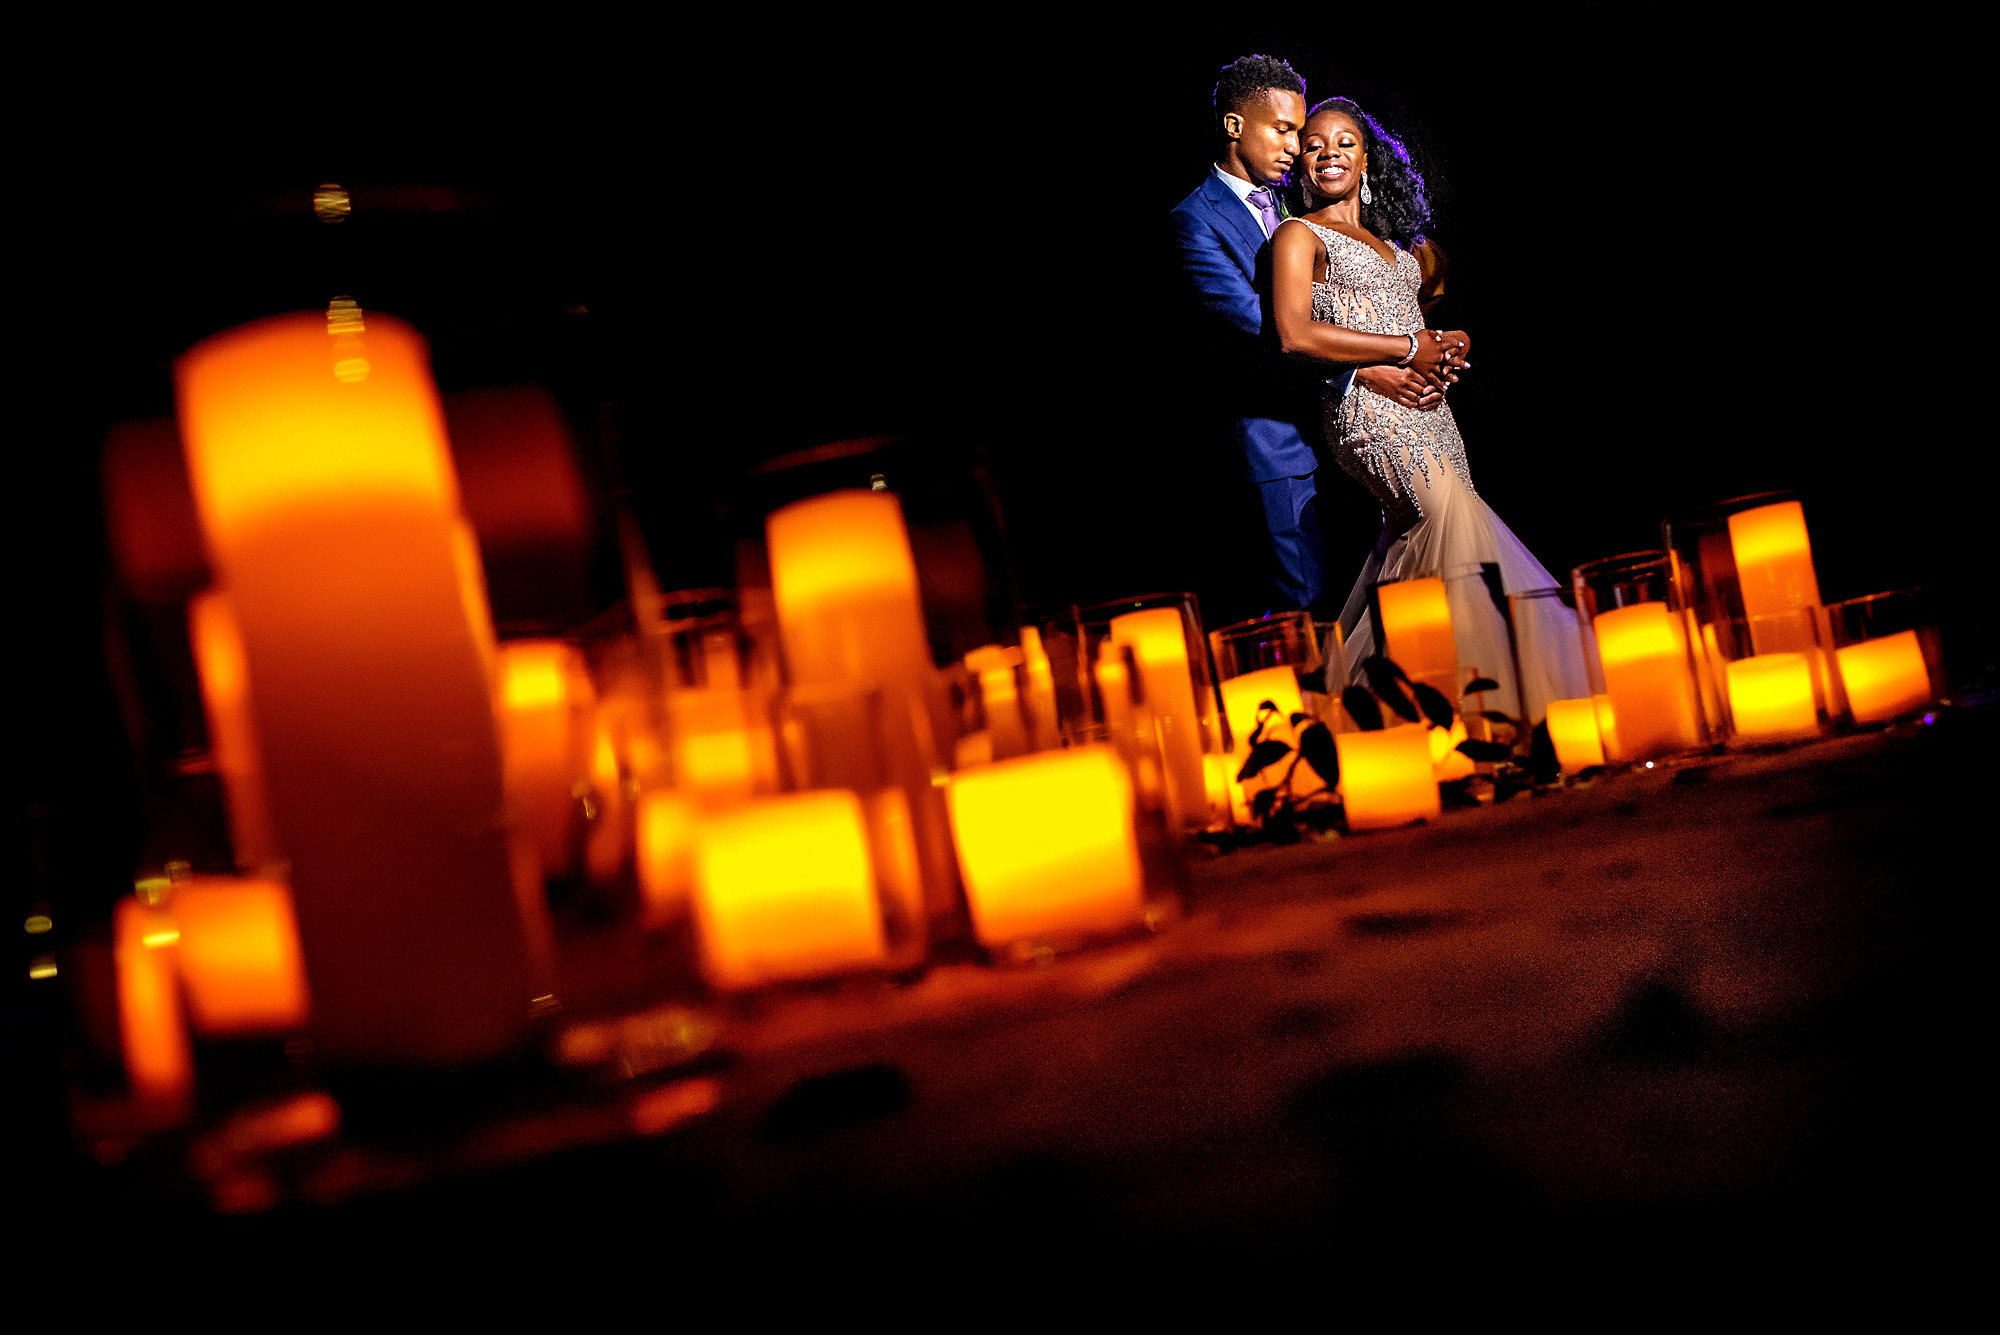 couples portrait with candles in the foreground.jpg